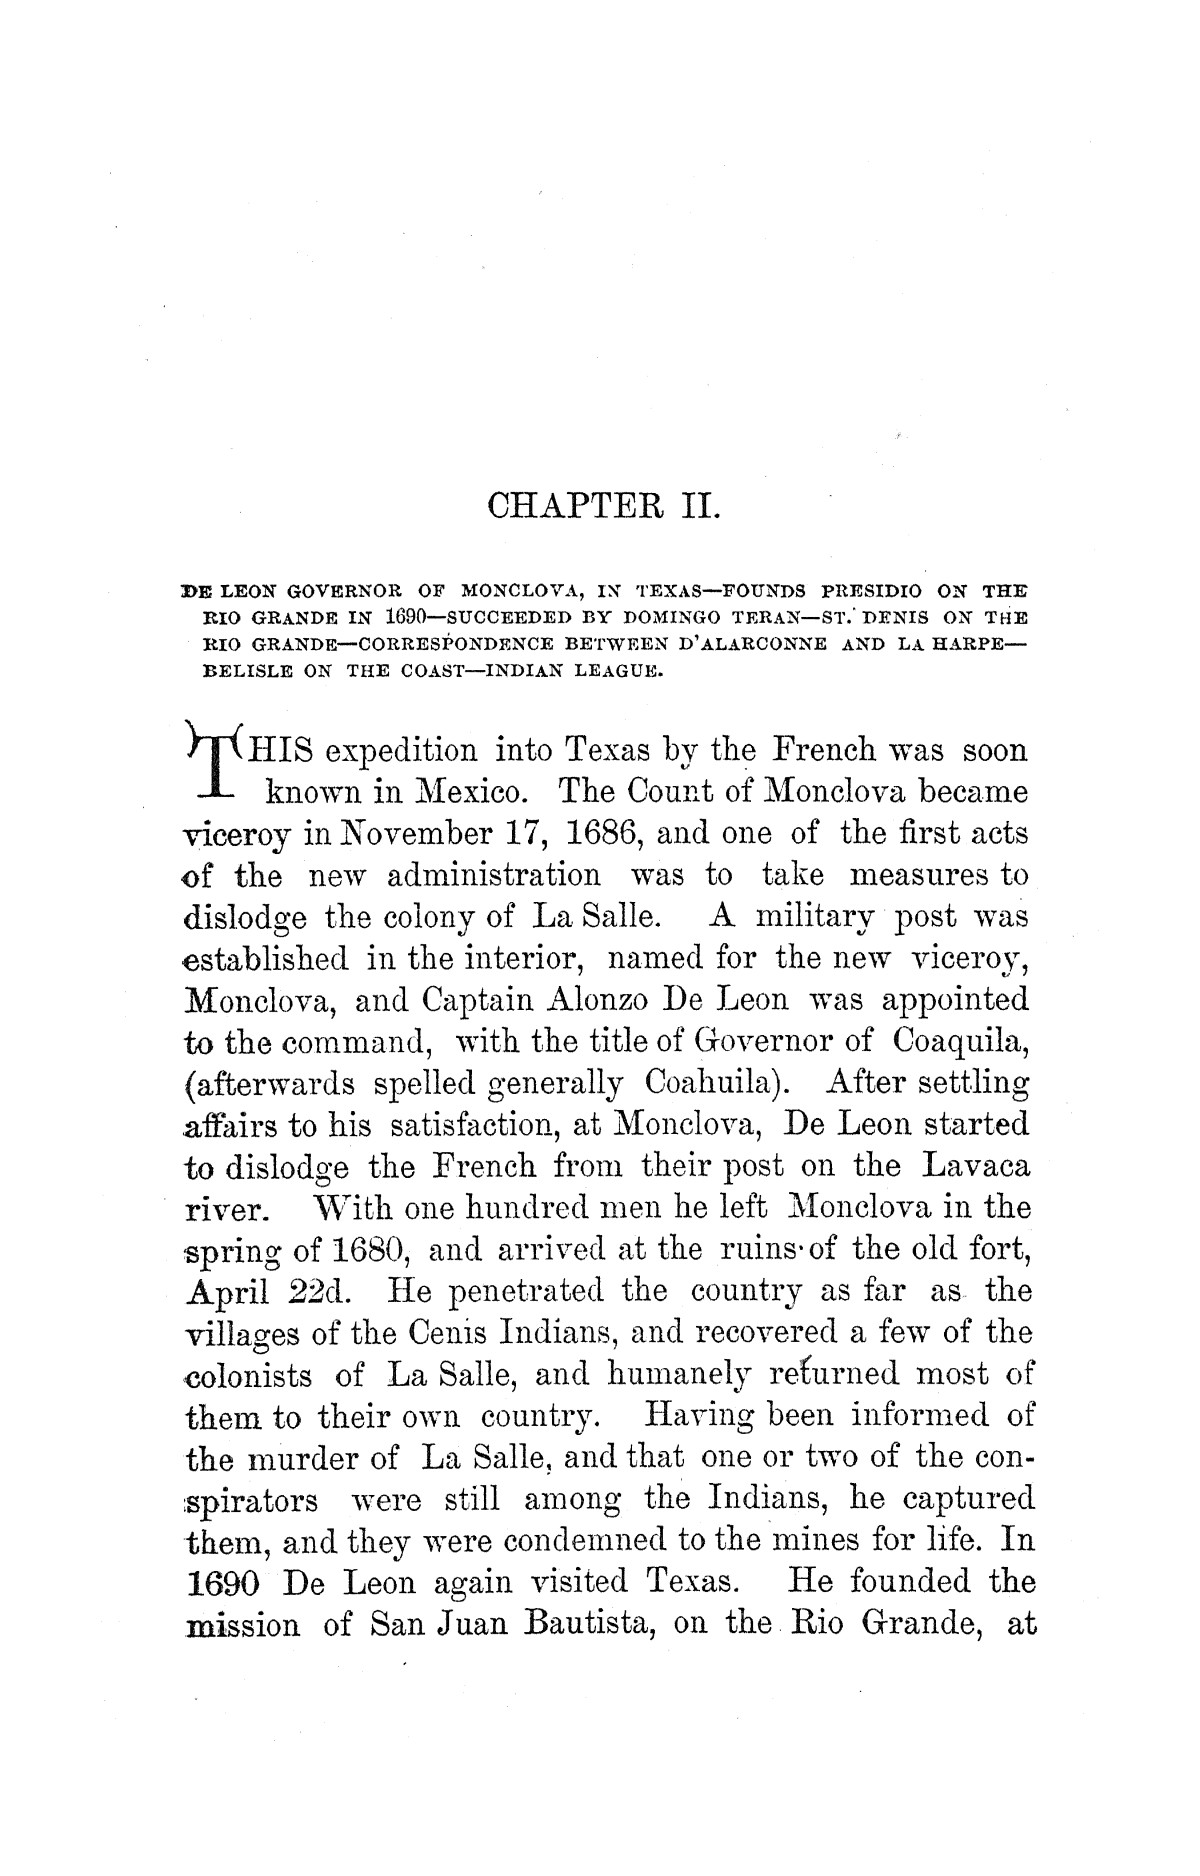 A pictorial history of Texas, from the earliest visits of European adventurers, to A.D. 1879. Embracing the periods of missions, colonization, the revolution the republic, and the state; also, a topographical description of the country ... together with its Indian tribes and their wars, and biographical sketches of hundreds of its leading historical characters. Also, a list of the countries, with historical and topical notes, and descriptions of the public institutions of the state.                                                                                                      [Sequence #]: 93 of 859